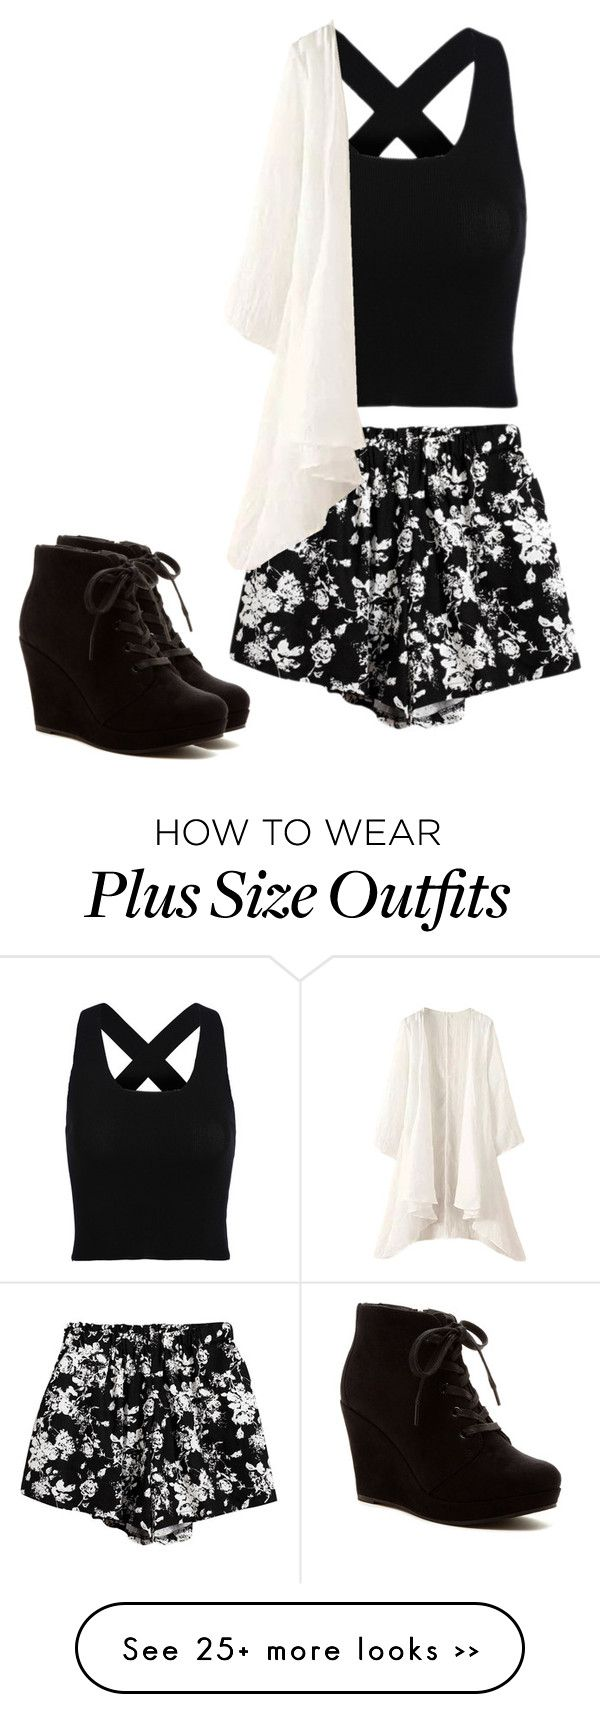 best wish list of things i want images on pinterest casual